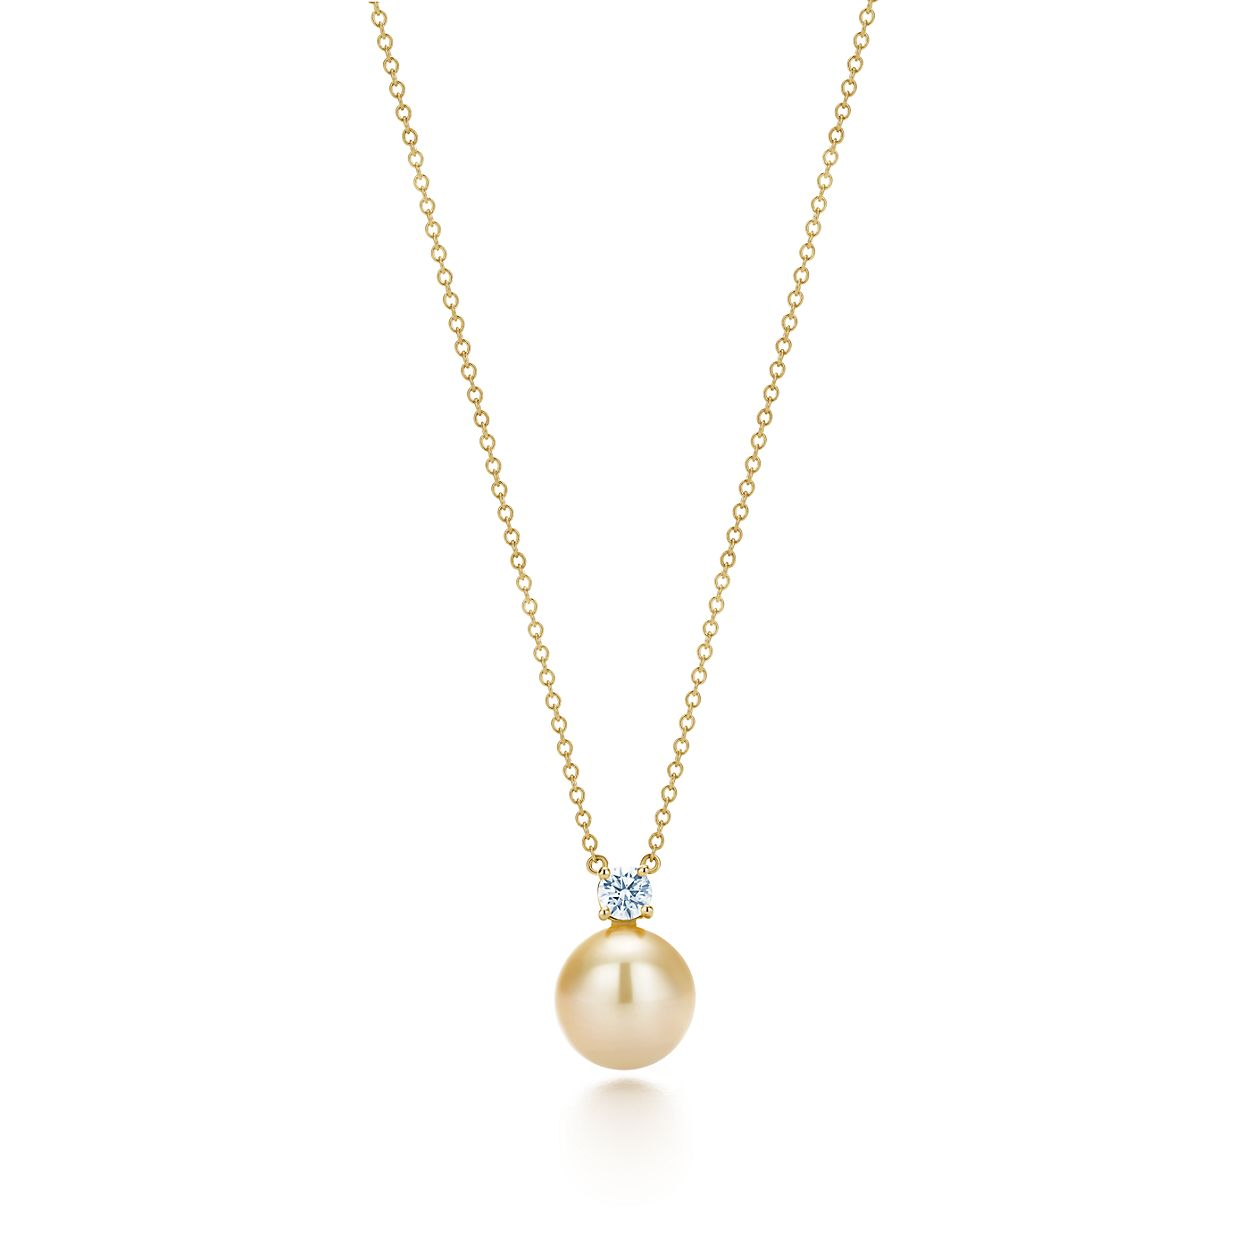 Tiffany south sea pearl pendant in 18k gold with diamonds tiffany tiffany south seapearl pendant aloadofball Gallery